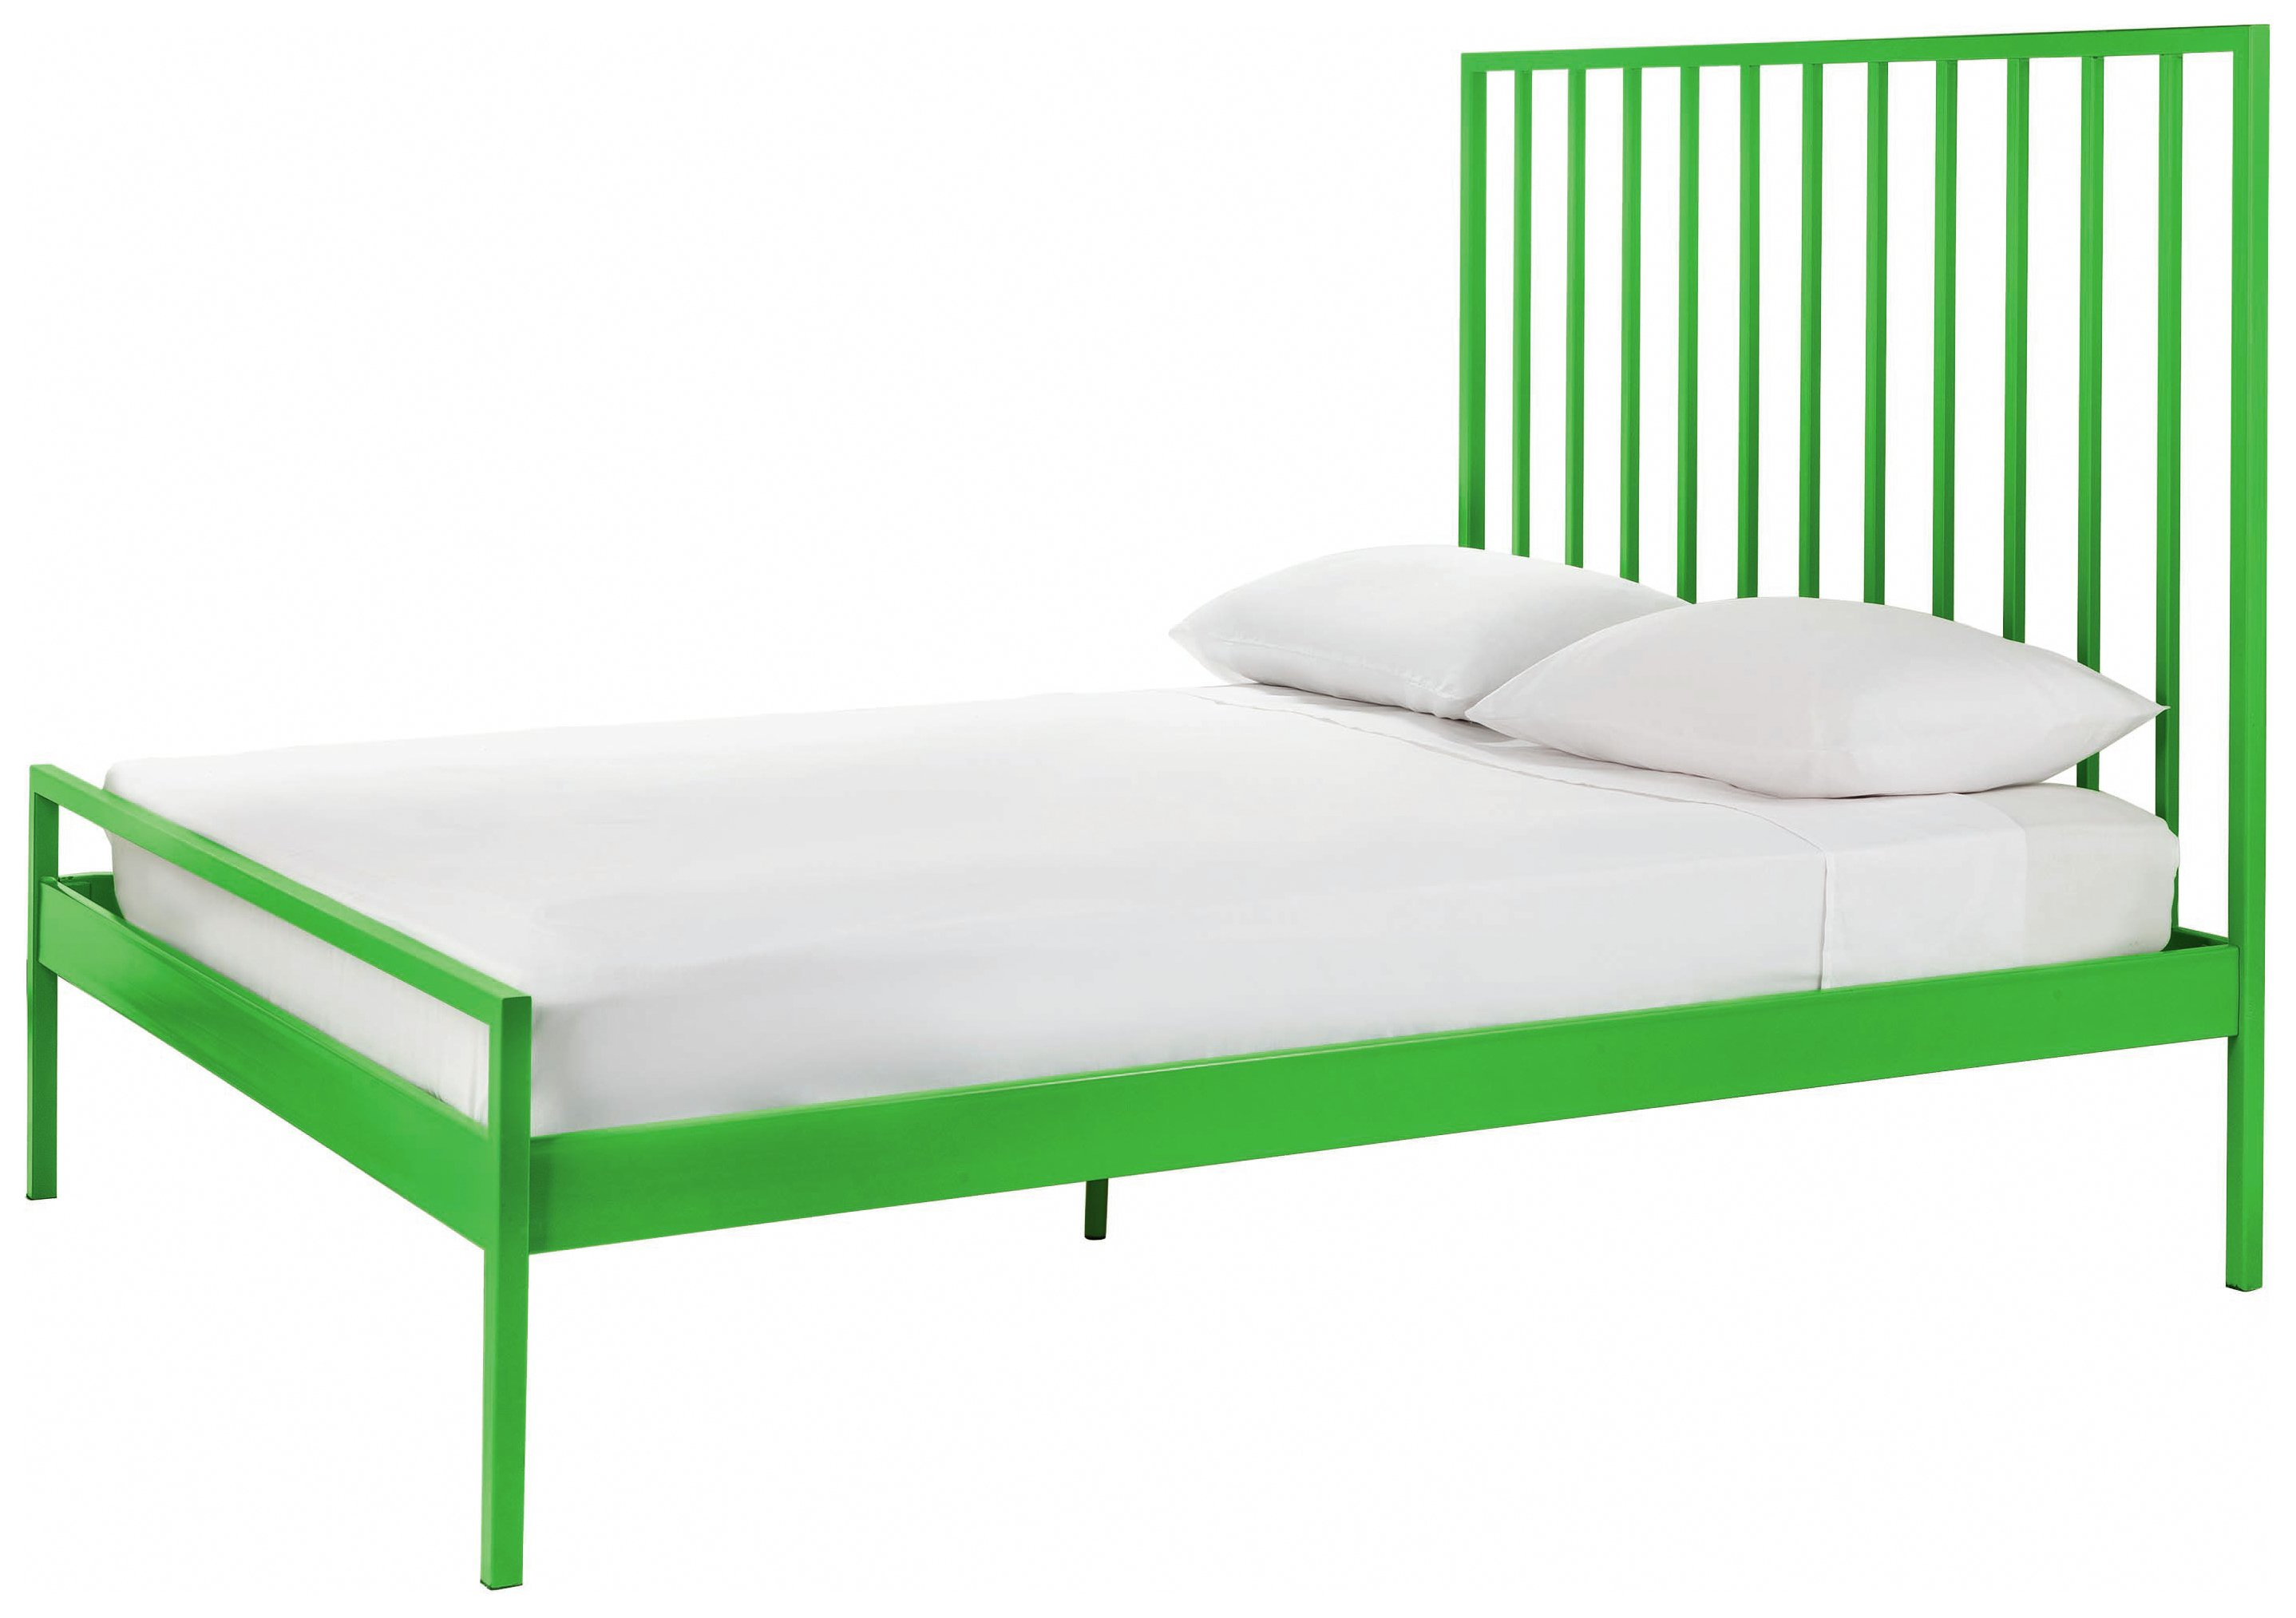 Designed in house and exclusive to Habitat, the Habitat Lucia green double metal bed has a clean, strong design. The statement headboard and vivid colour will undo...